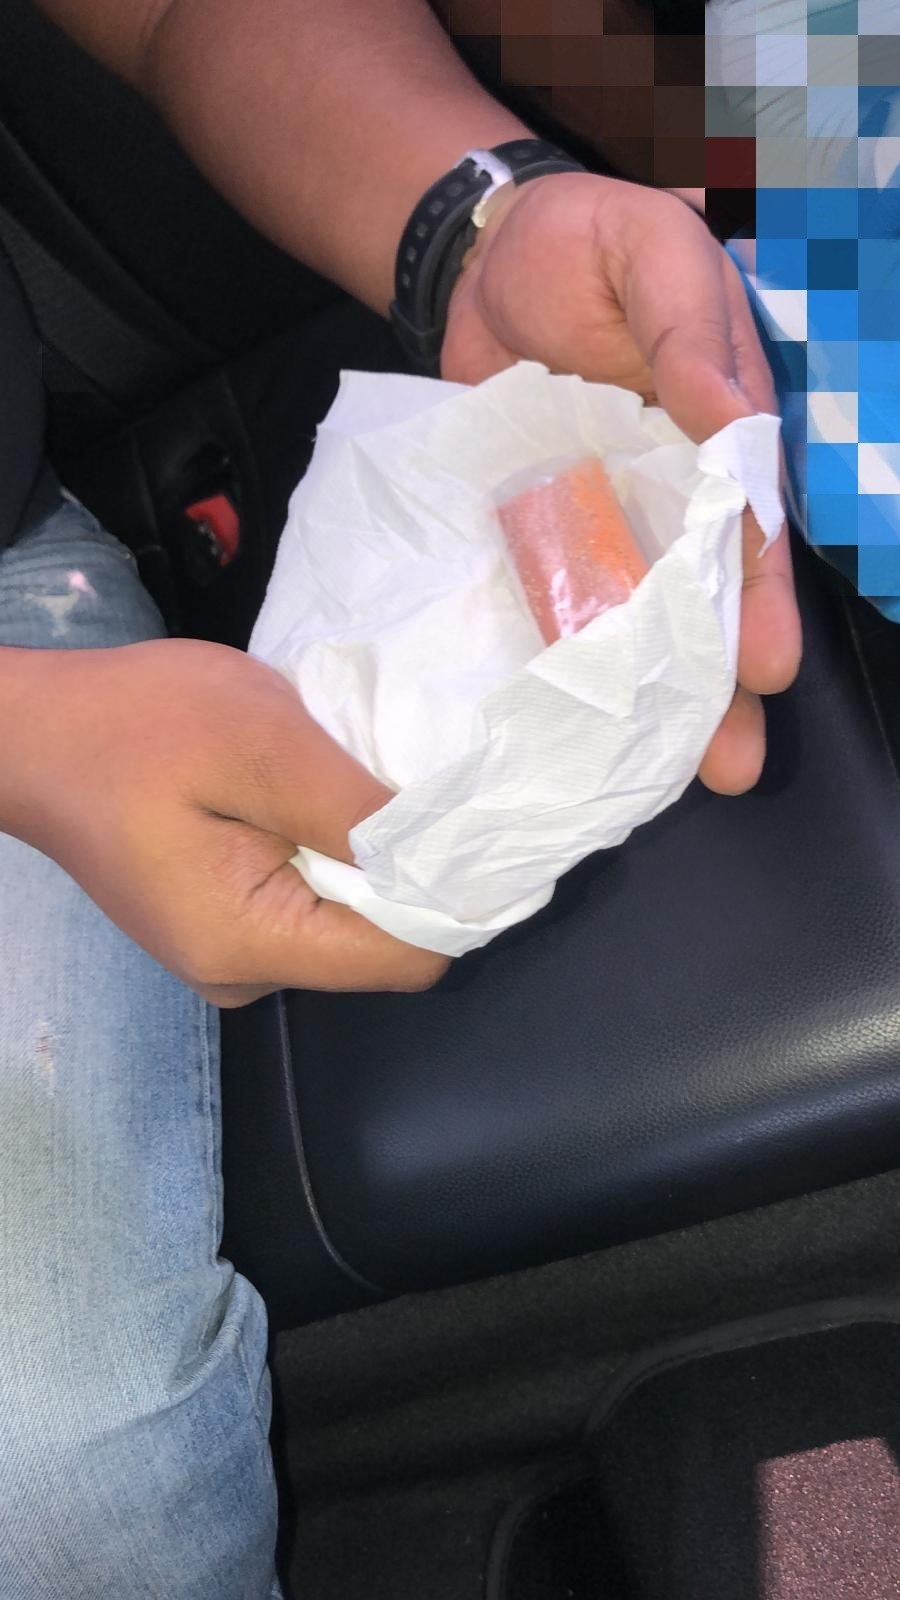 Photos- 1 and 2 (CNB): Brownish powdery substance recovered from CNB's operation at Ang Mo Kio Ave 3 on 16 September 2019.